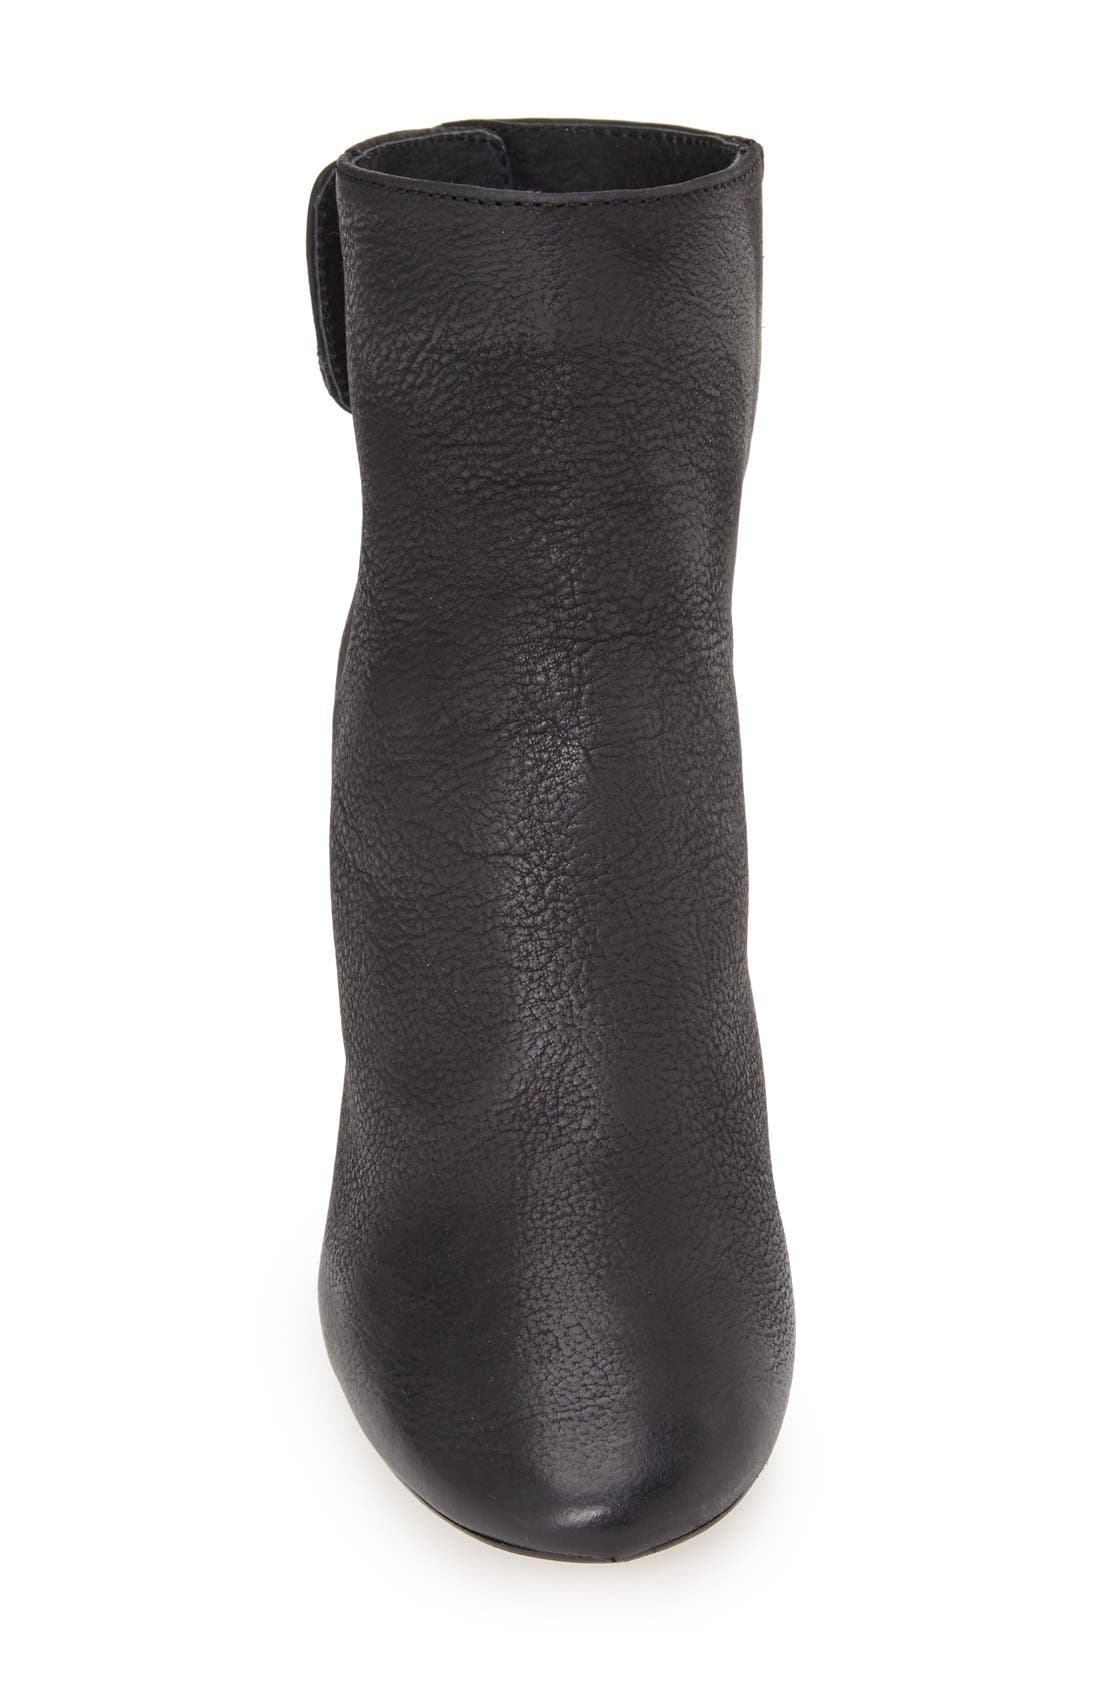 Alternate Image 3  - Topshop 'Maid' Leather Ankle Boot (Women)